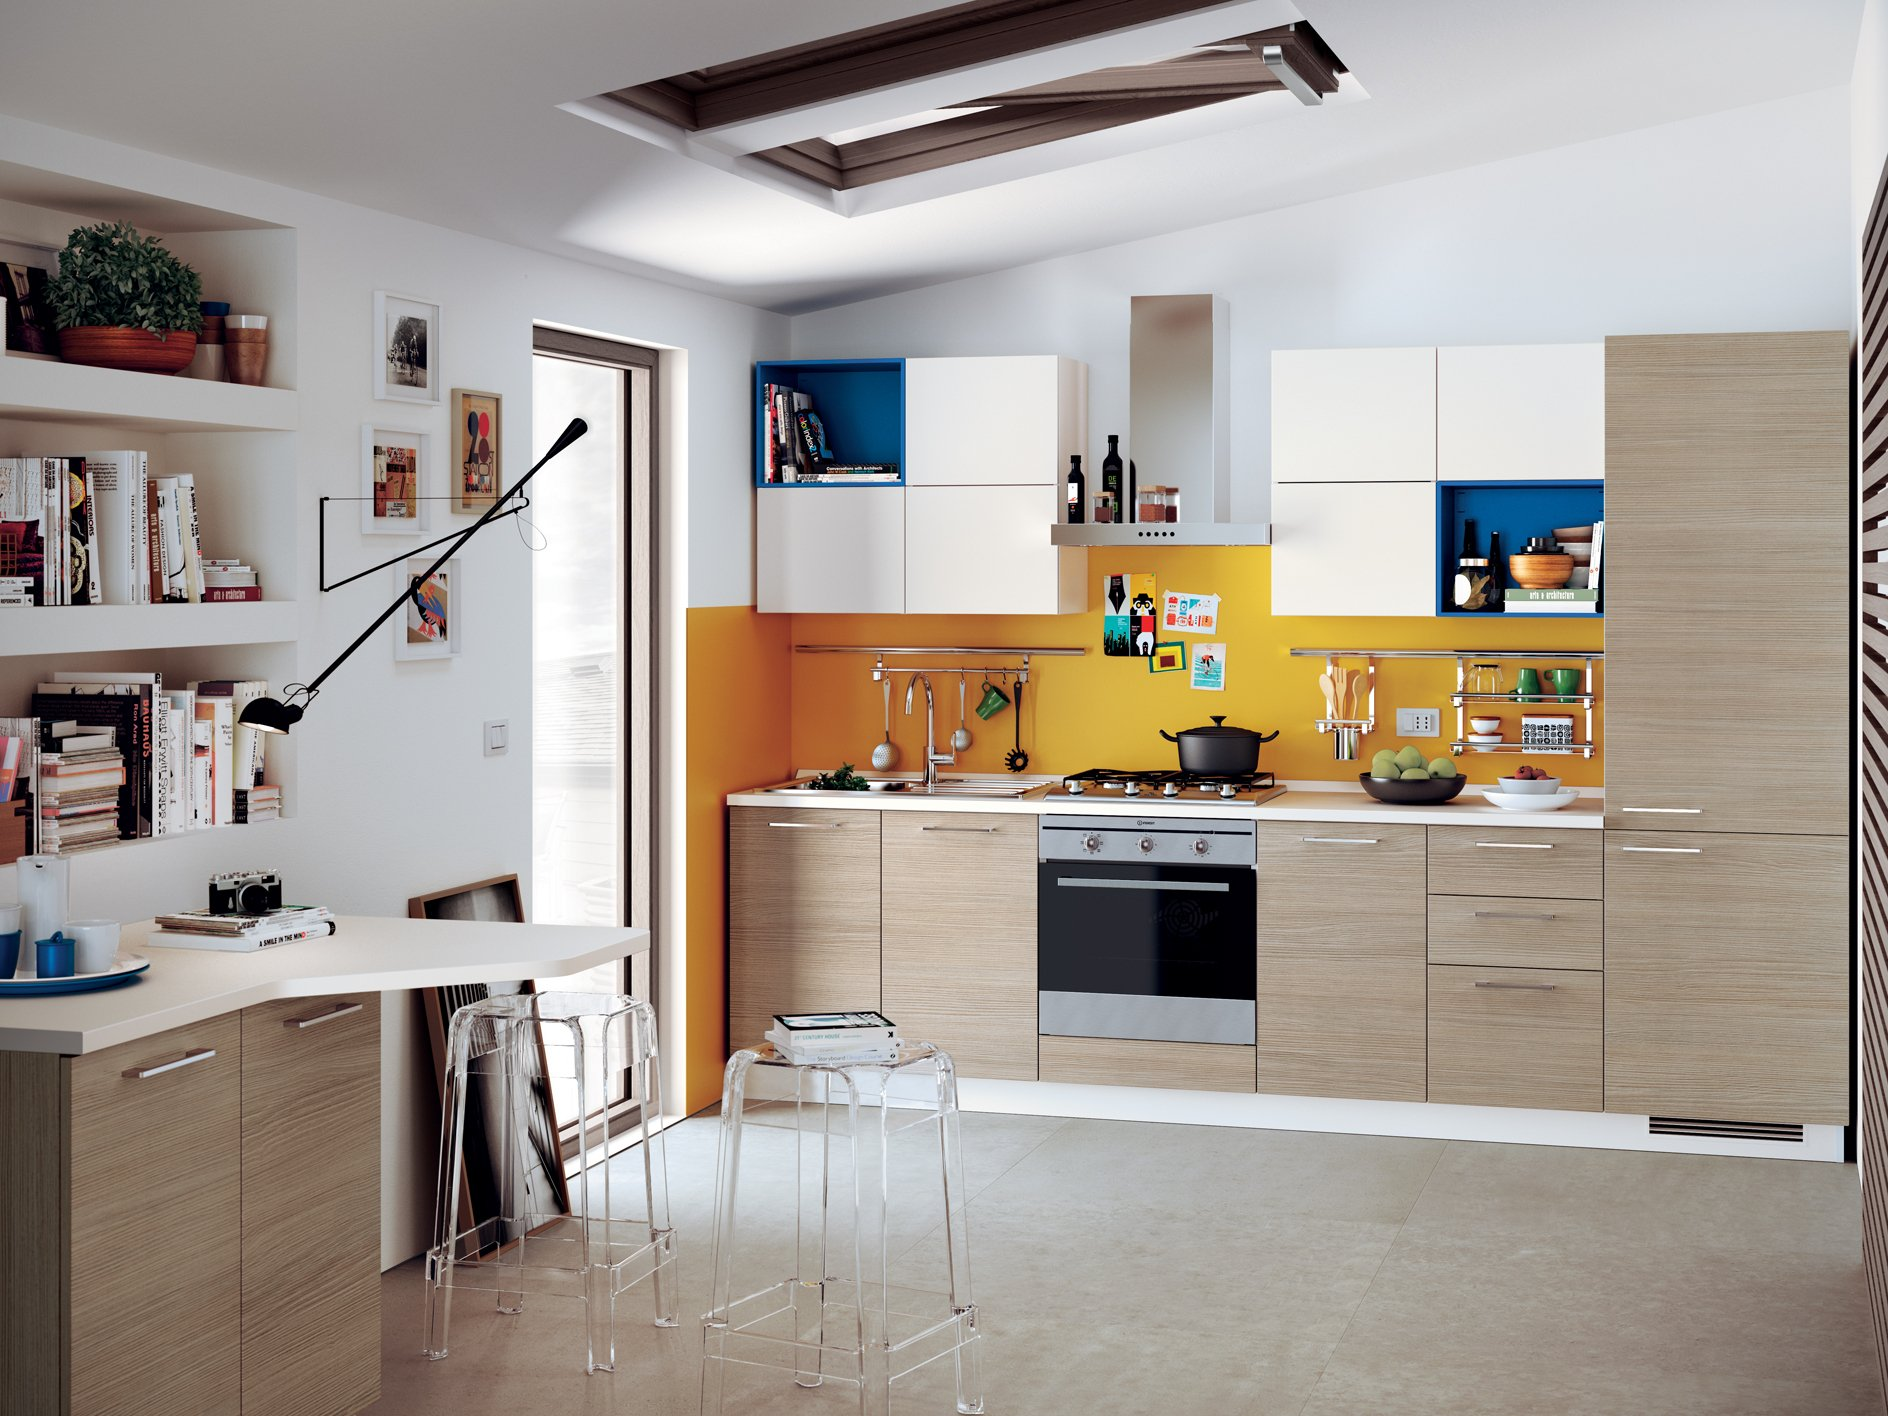 Cucine in materiale sintetico | Archiproducts